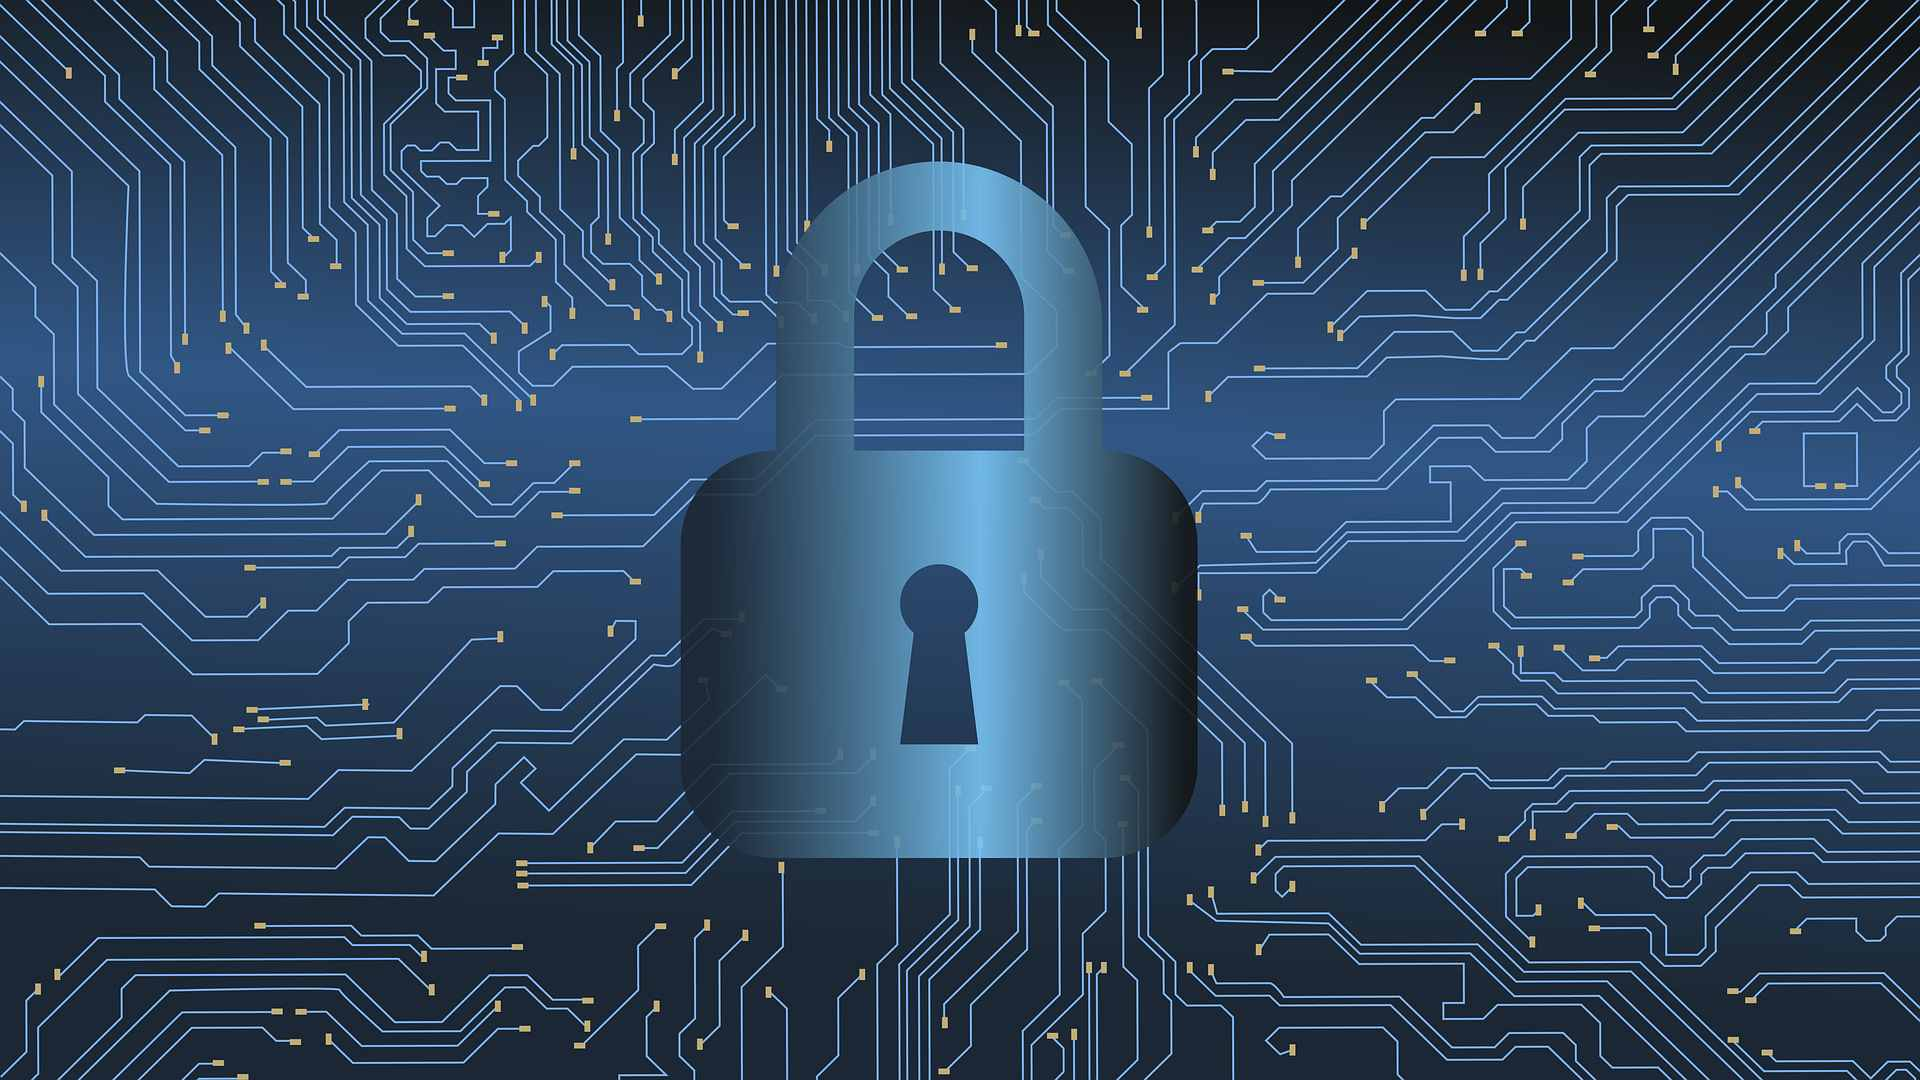 Water providers face cybersecurity challenges